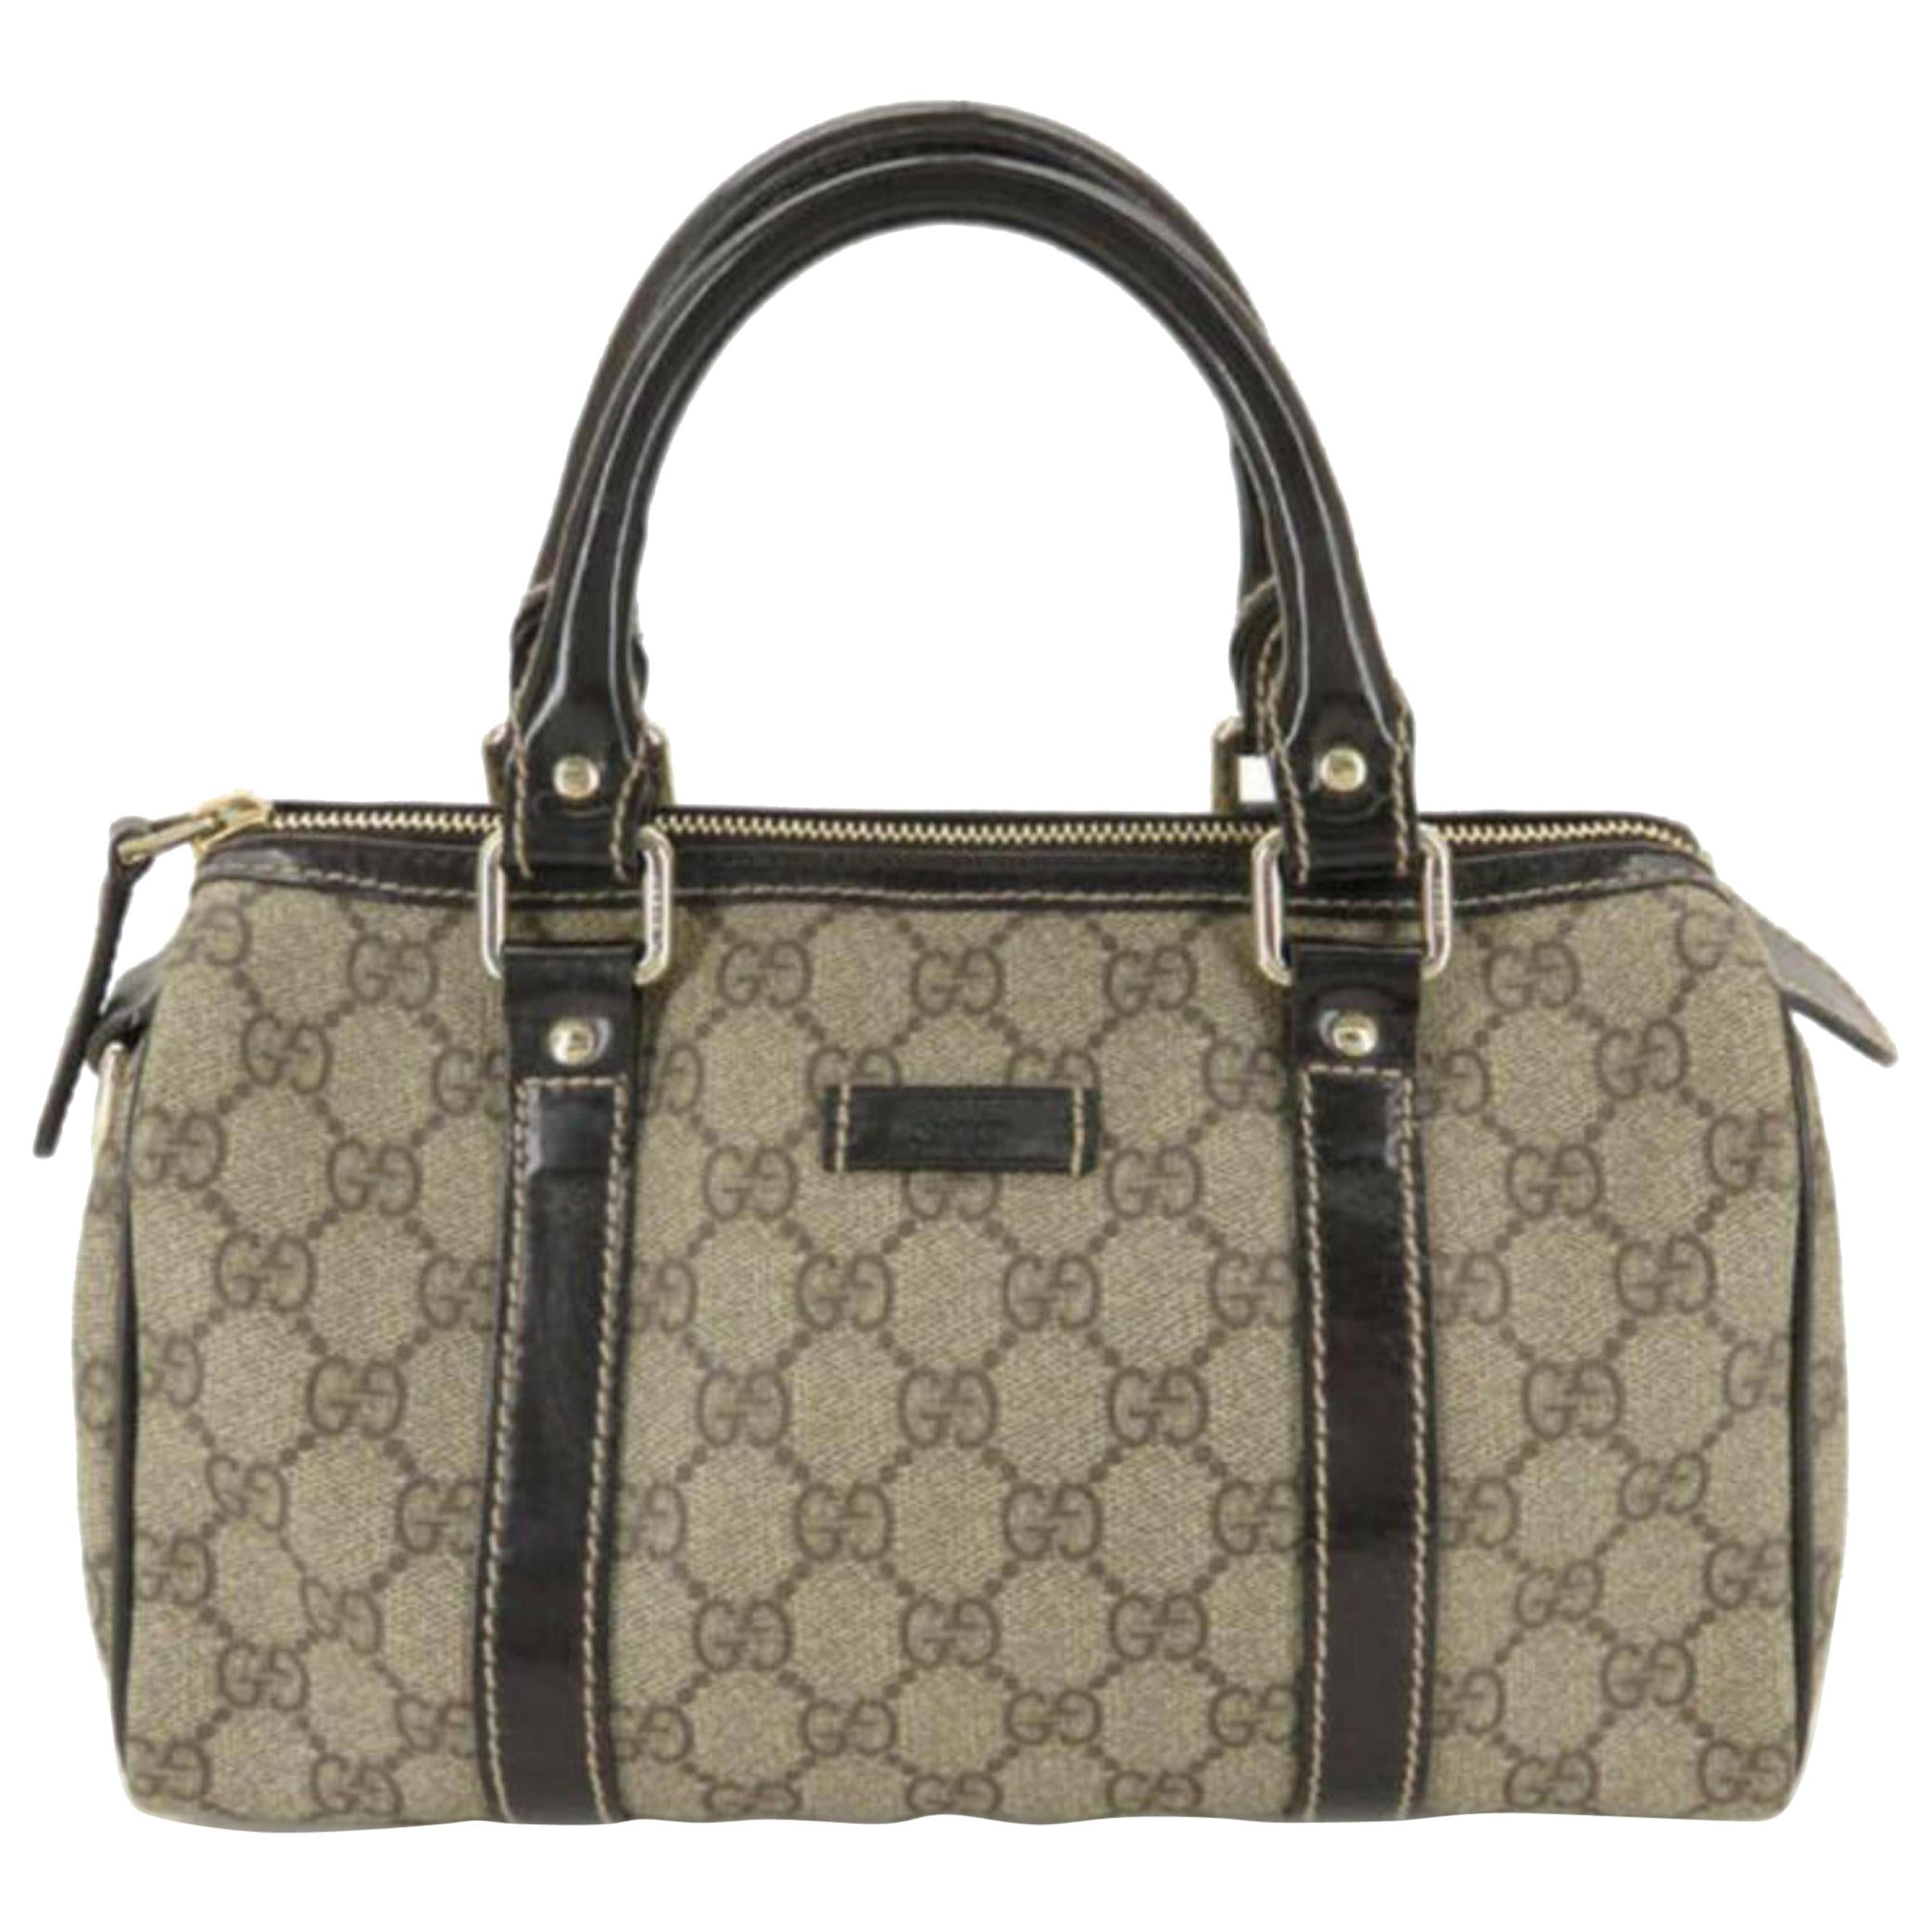 f6b4811b4779 Vintage Gucci Top Handle Bags - 441 For Sale at 1stdibs